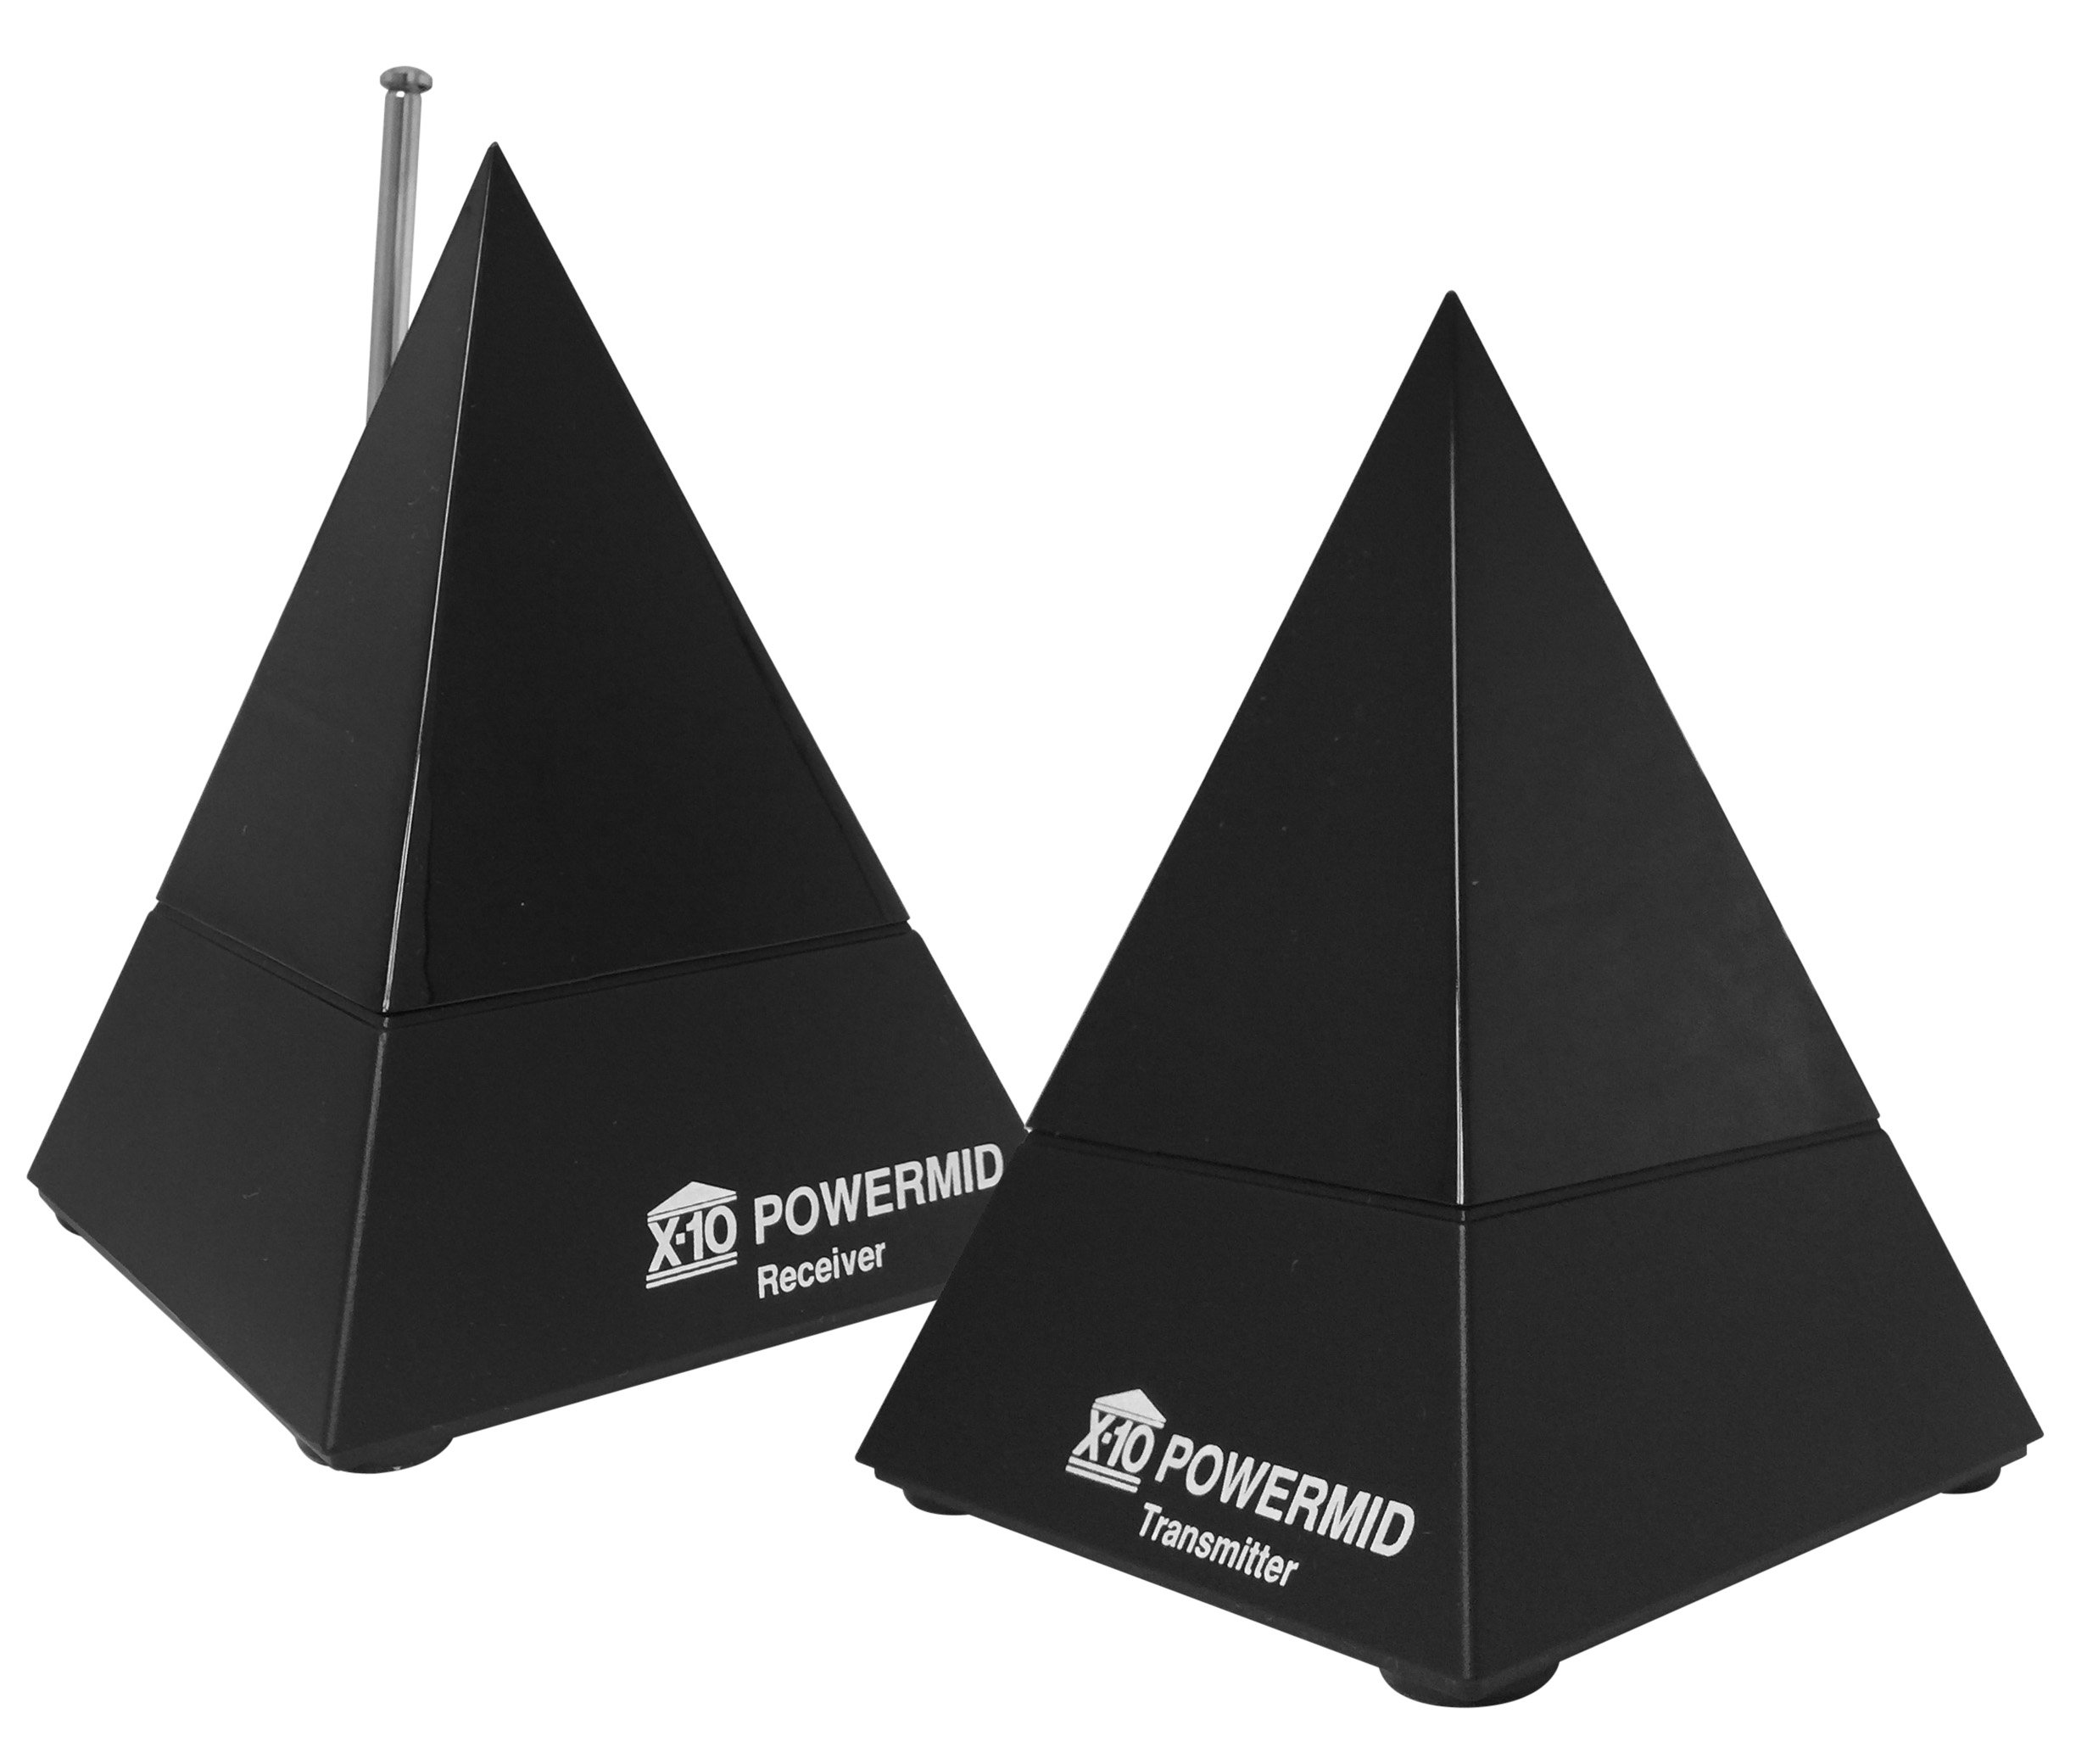 X10 Powermid PM5900 Remote Control Extender Kit - Includes a Transmitter and Receiver - (Infrared Only No Video) by X10